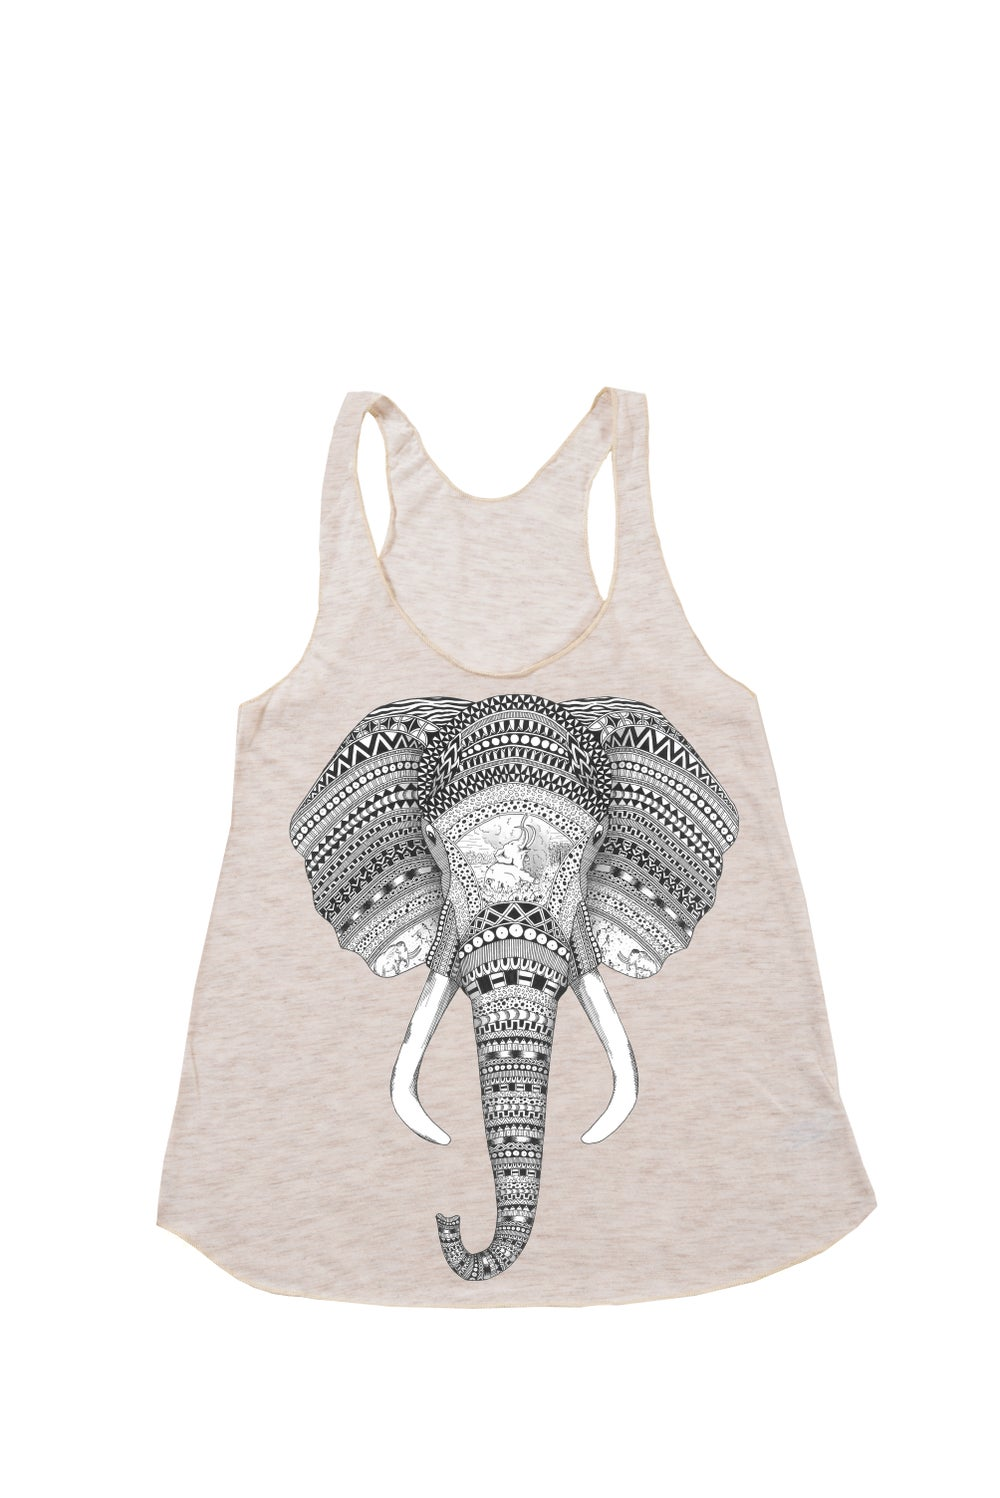 "Image of ""An Elephant Never Forgets"" Racerback Tank"